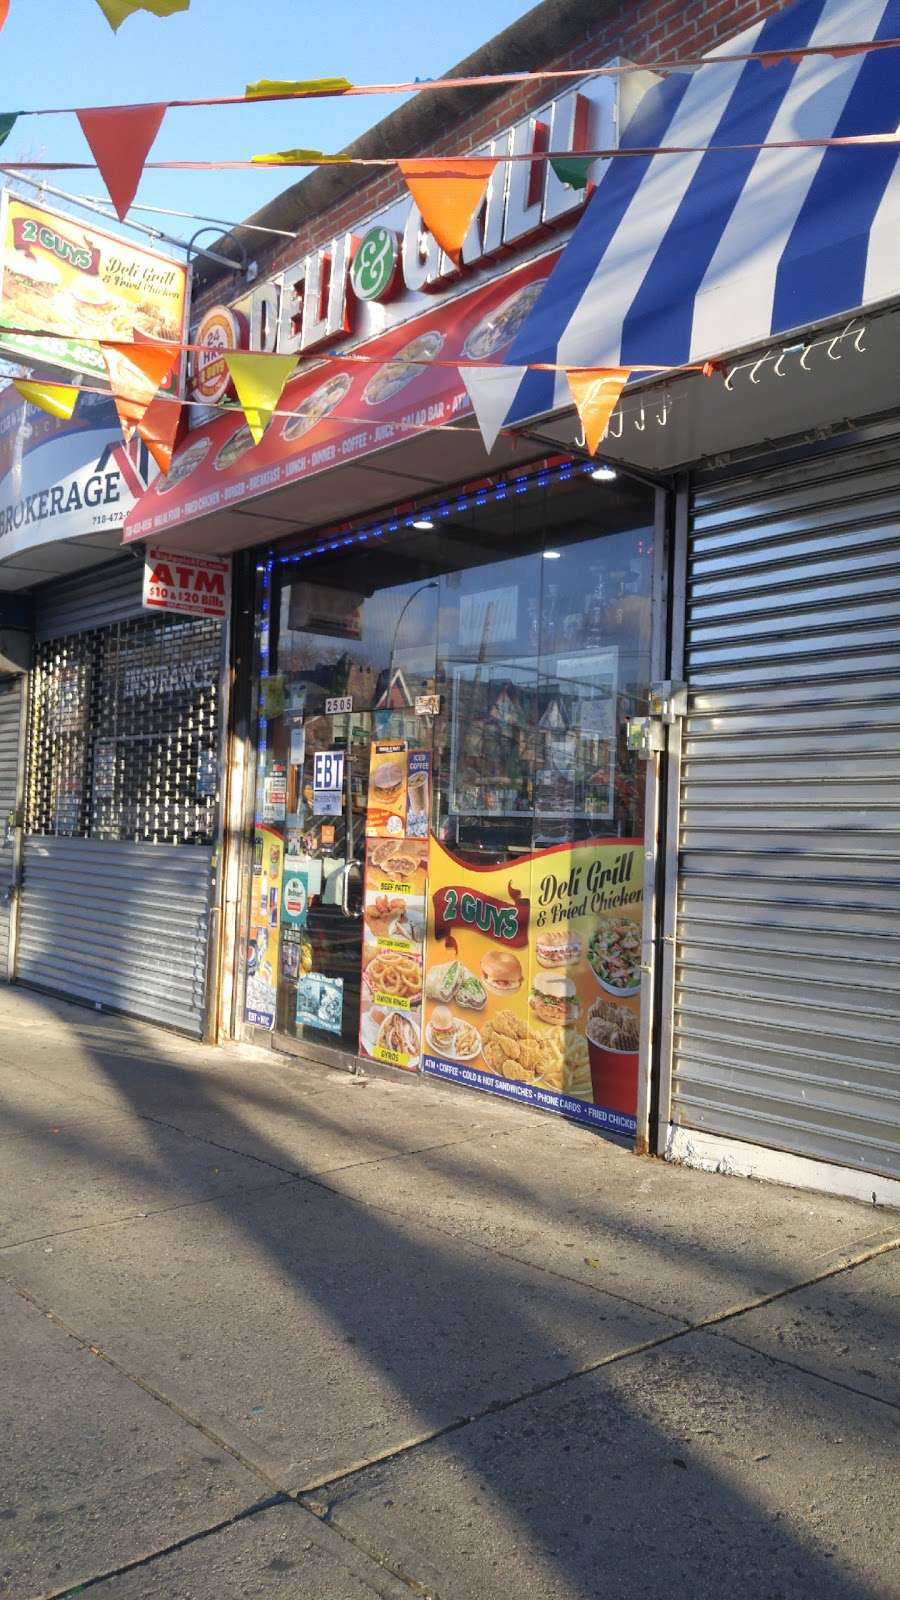 Two Guys - store  | Photo 1 of 2 | Address: 25-5 36th Ave, Queens, NY 11106, USA | Phone: (718) 433-4956